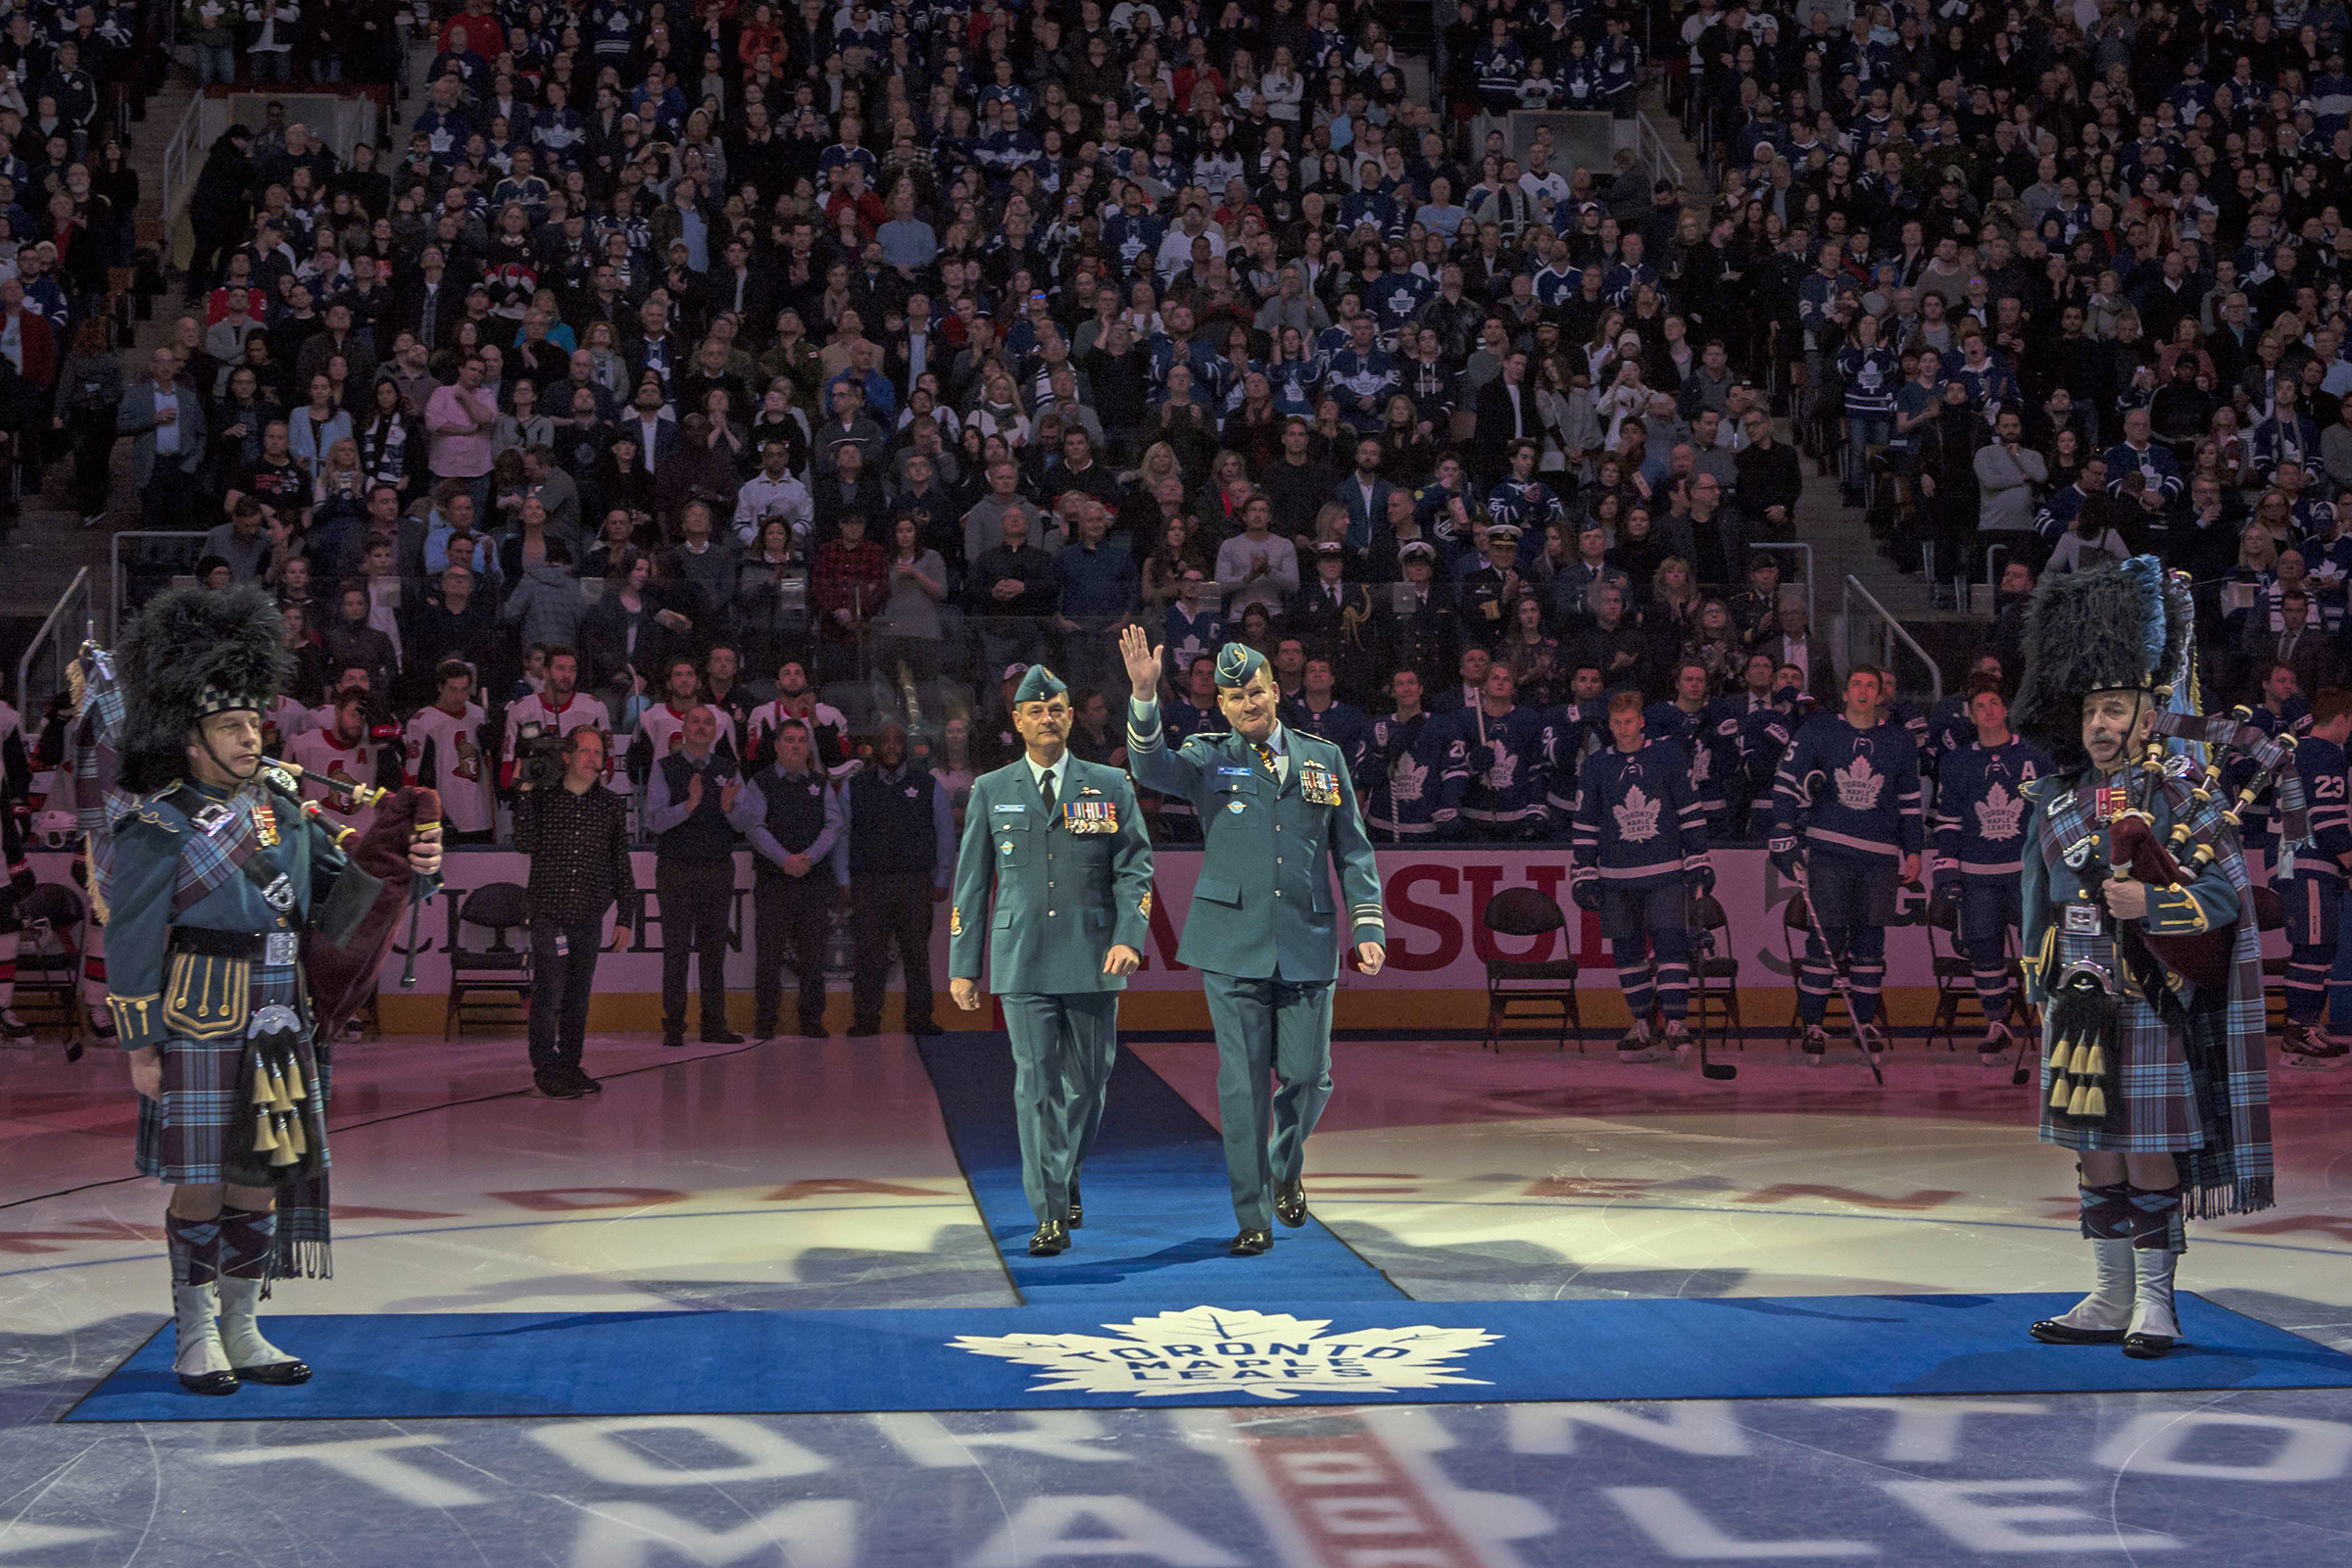 Lieutenant-General Mike Hood, commander of the Royal Canadian Air Force, accompanied by Chief Warrant Officer Gérard Poitras, RCAF command chief warrant officer, waves to the crowd of more than 19,000 at the Air Canada Centre on February 10, 2018, at the beginning of the ceremony transferring the guardianship of the retired RCAF Colours to the Maple Leafs hockey team. PHOTO: Corporal Alana Morin, FA03-2018-0015-001